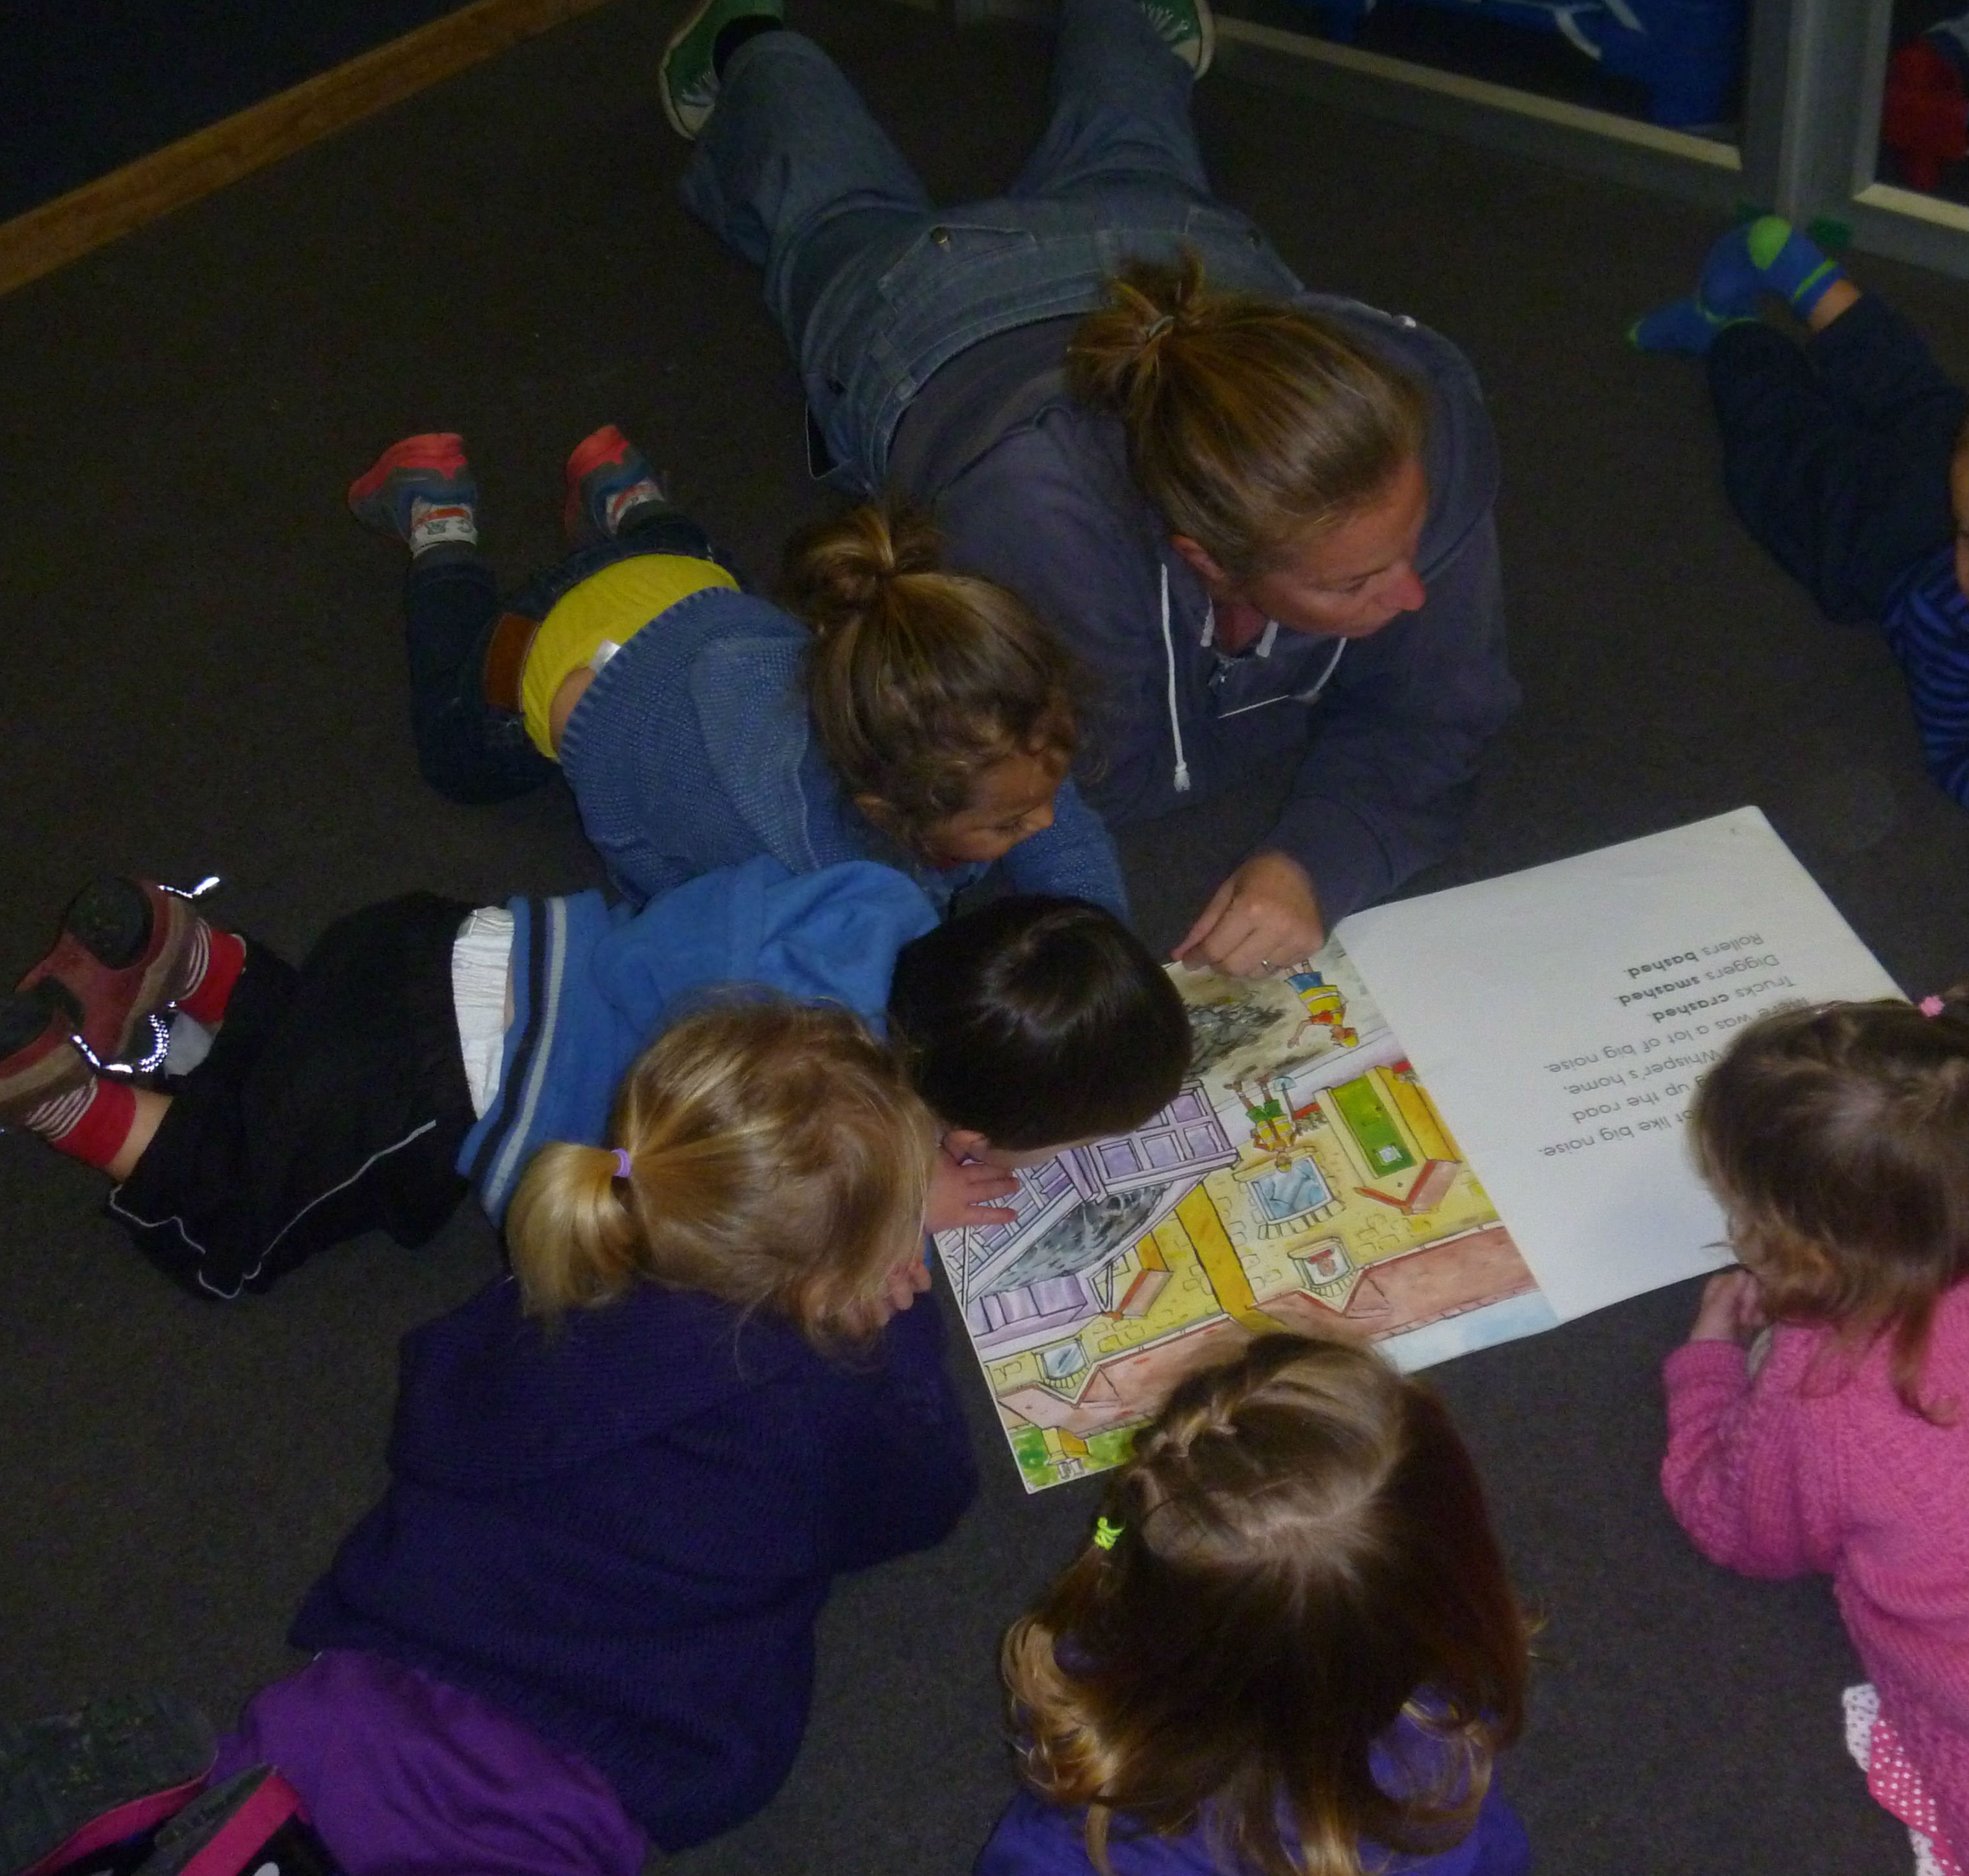 042.JPG - The Cambridge Early Learning Centre, childcare, ECE, and daycare located in Cambridge, Waikato, NZ